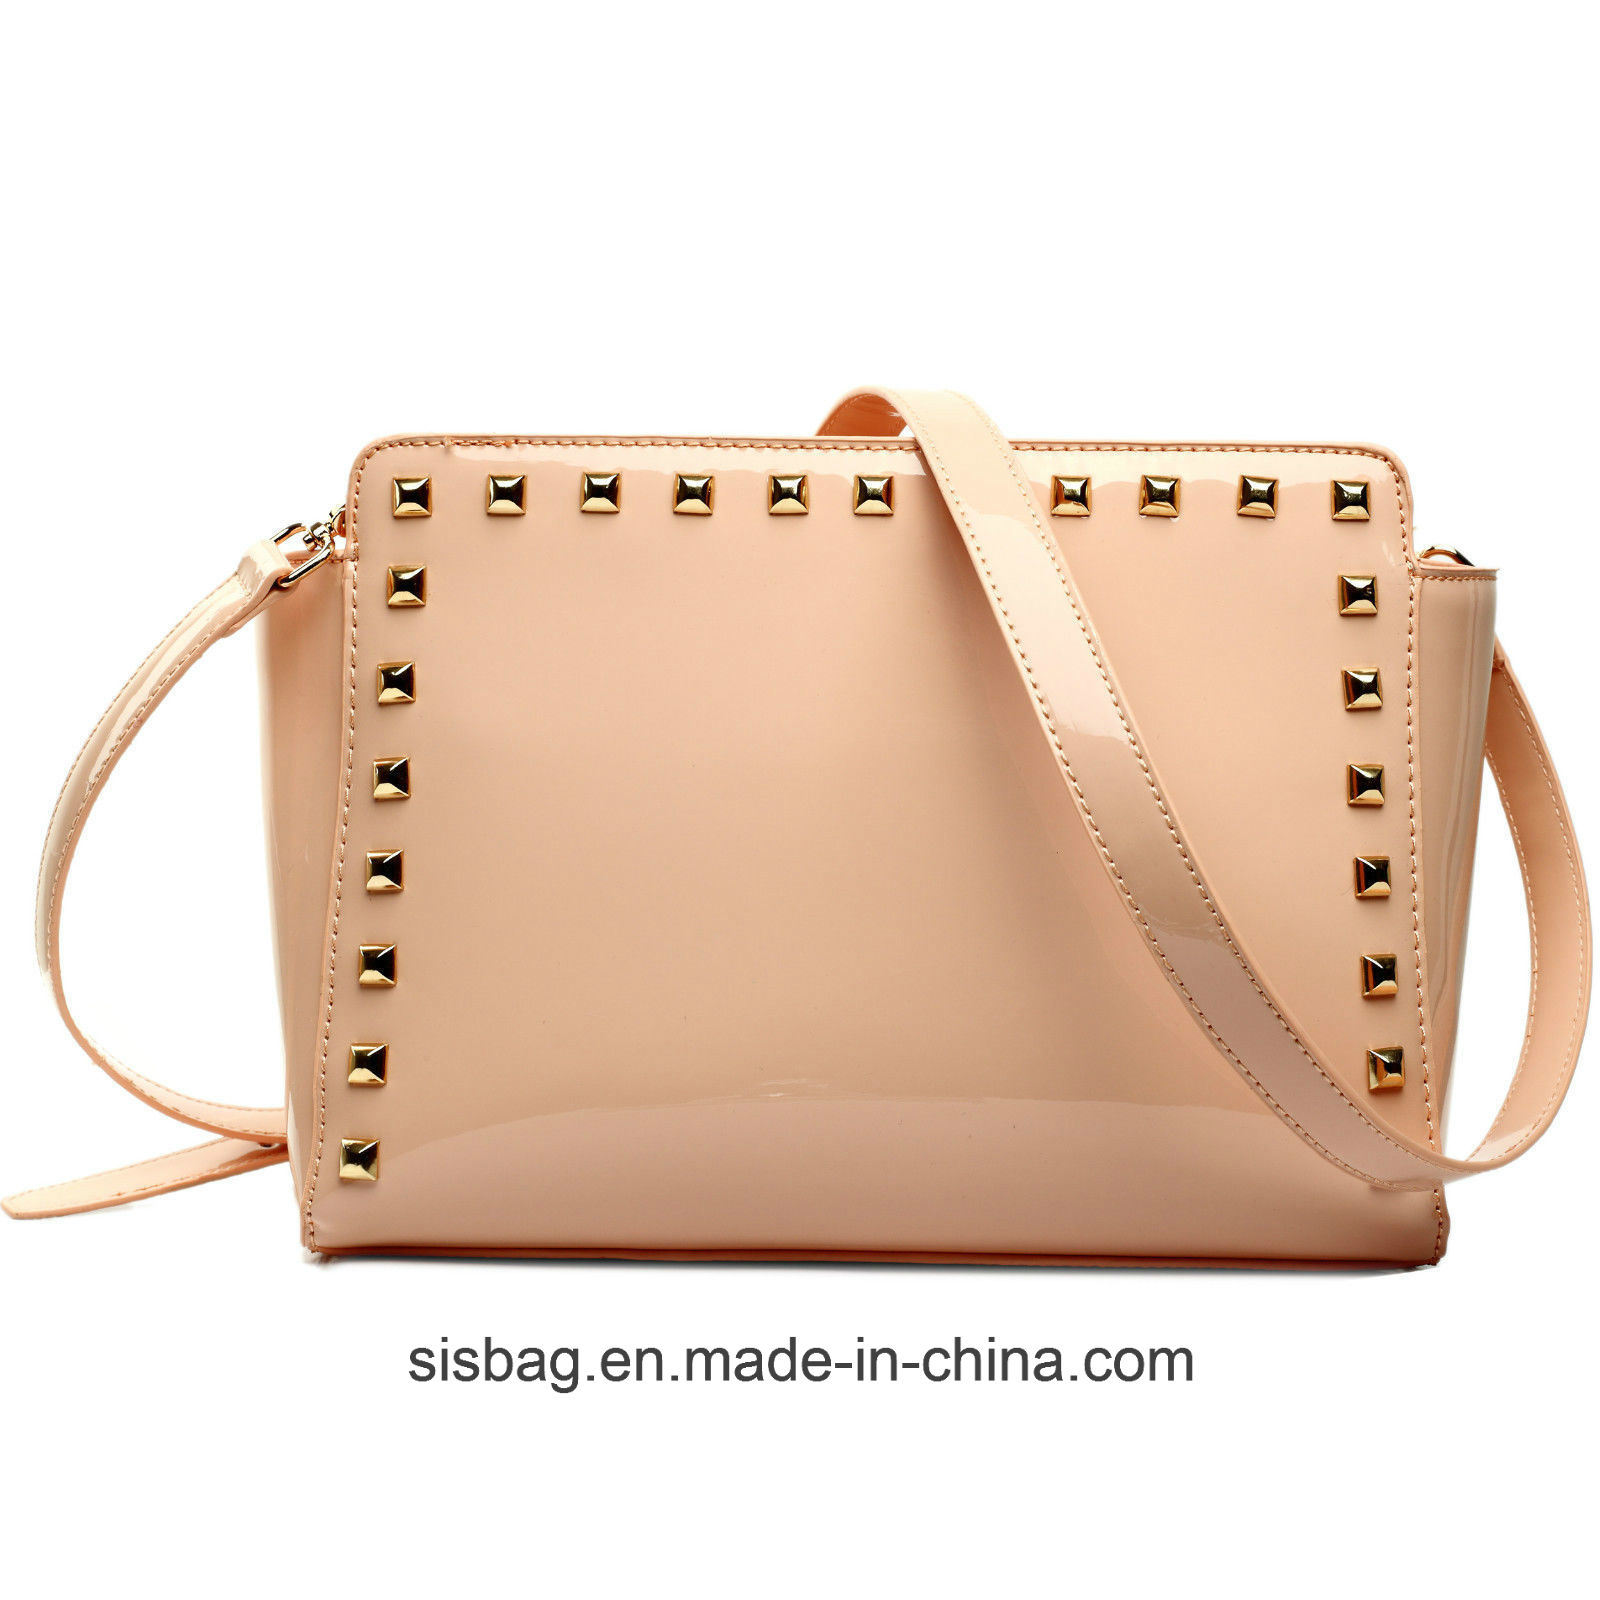 Womens Mirro PU Patent Bag Studded Cross Body Bag Shoulder Bag